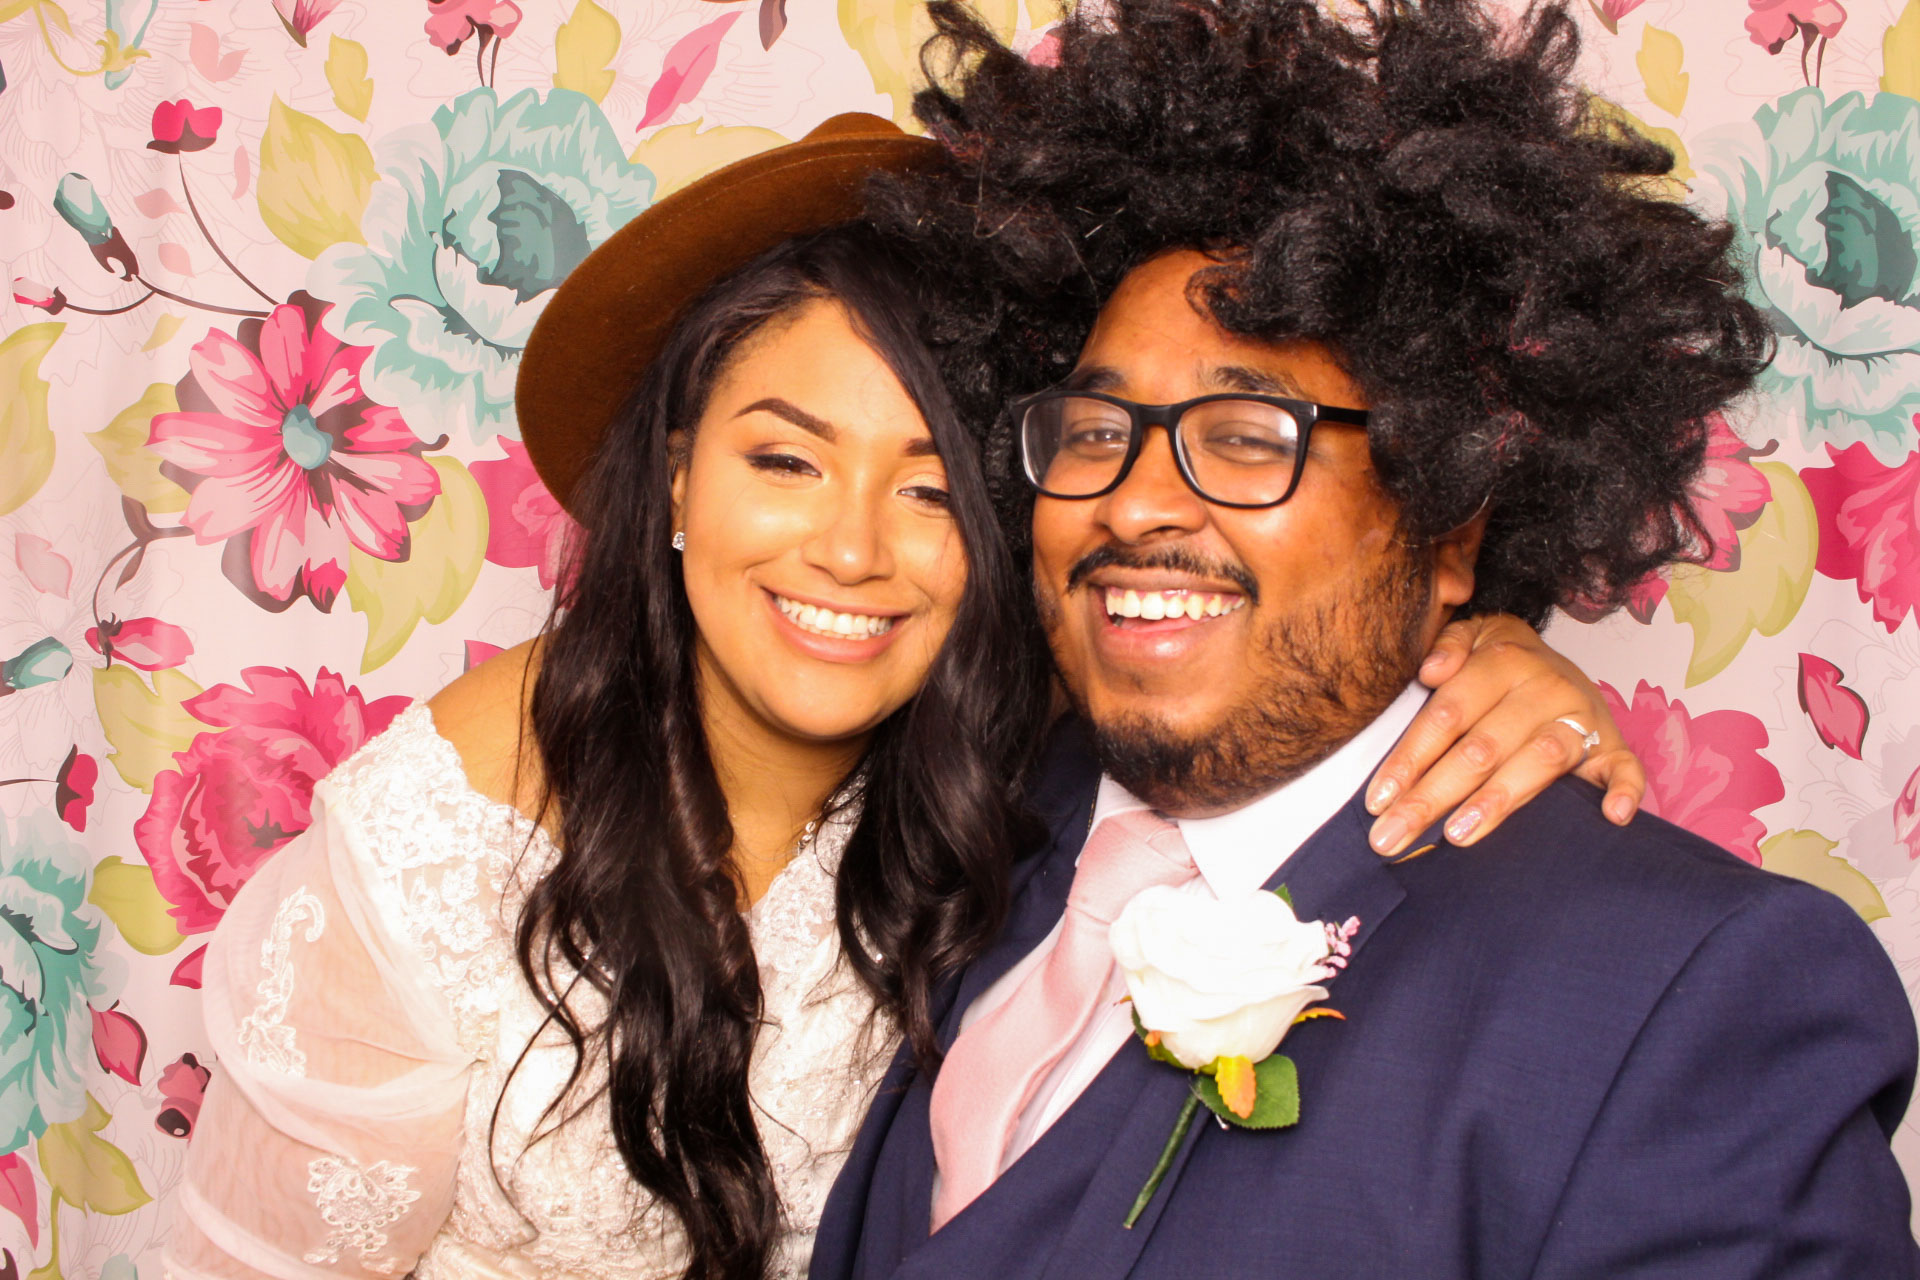 FOTOAUTO-photo-booth-hire-117.jpg